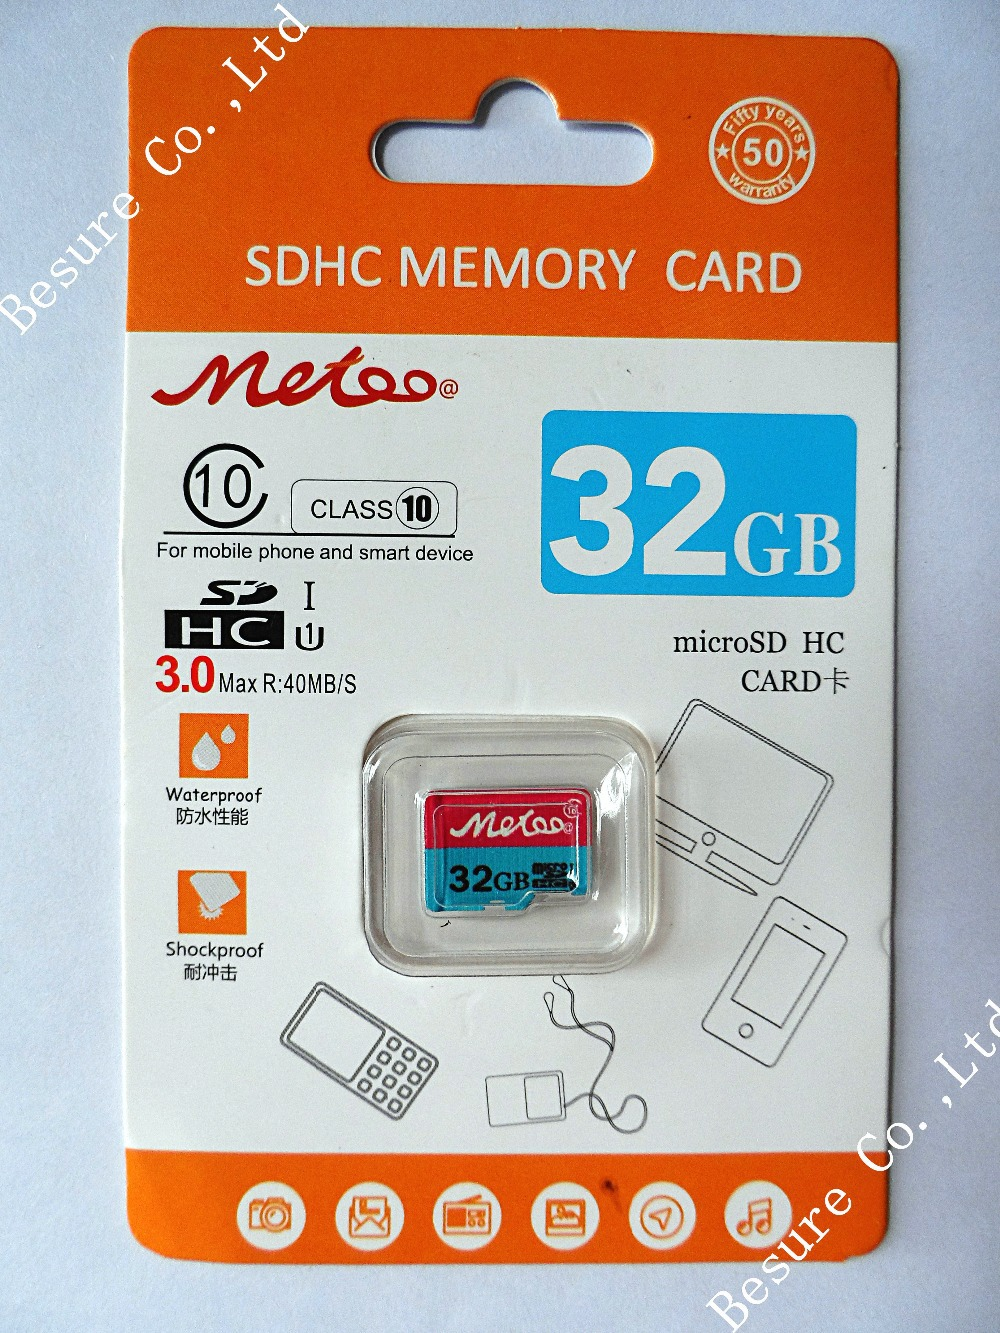 Metoo@ High speed Real capacity memory 4G 8GB class 4 16GB 32GB 64GB class 10 micro sd hc card Pass h2testw for Phone Tablet(China (Mainland))